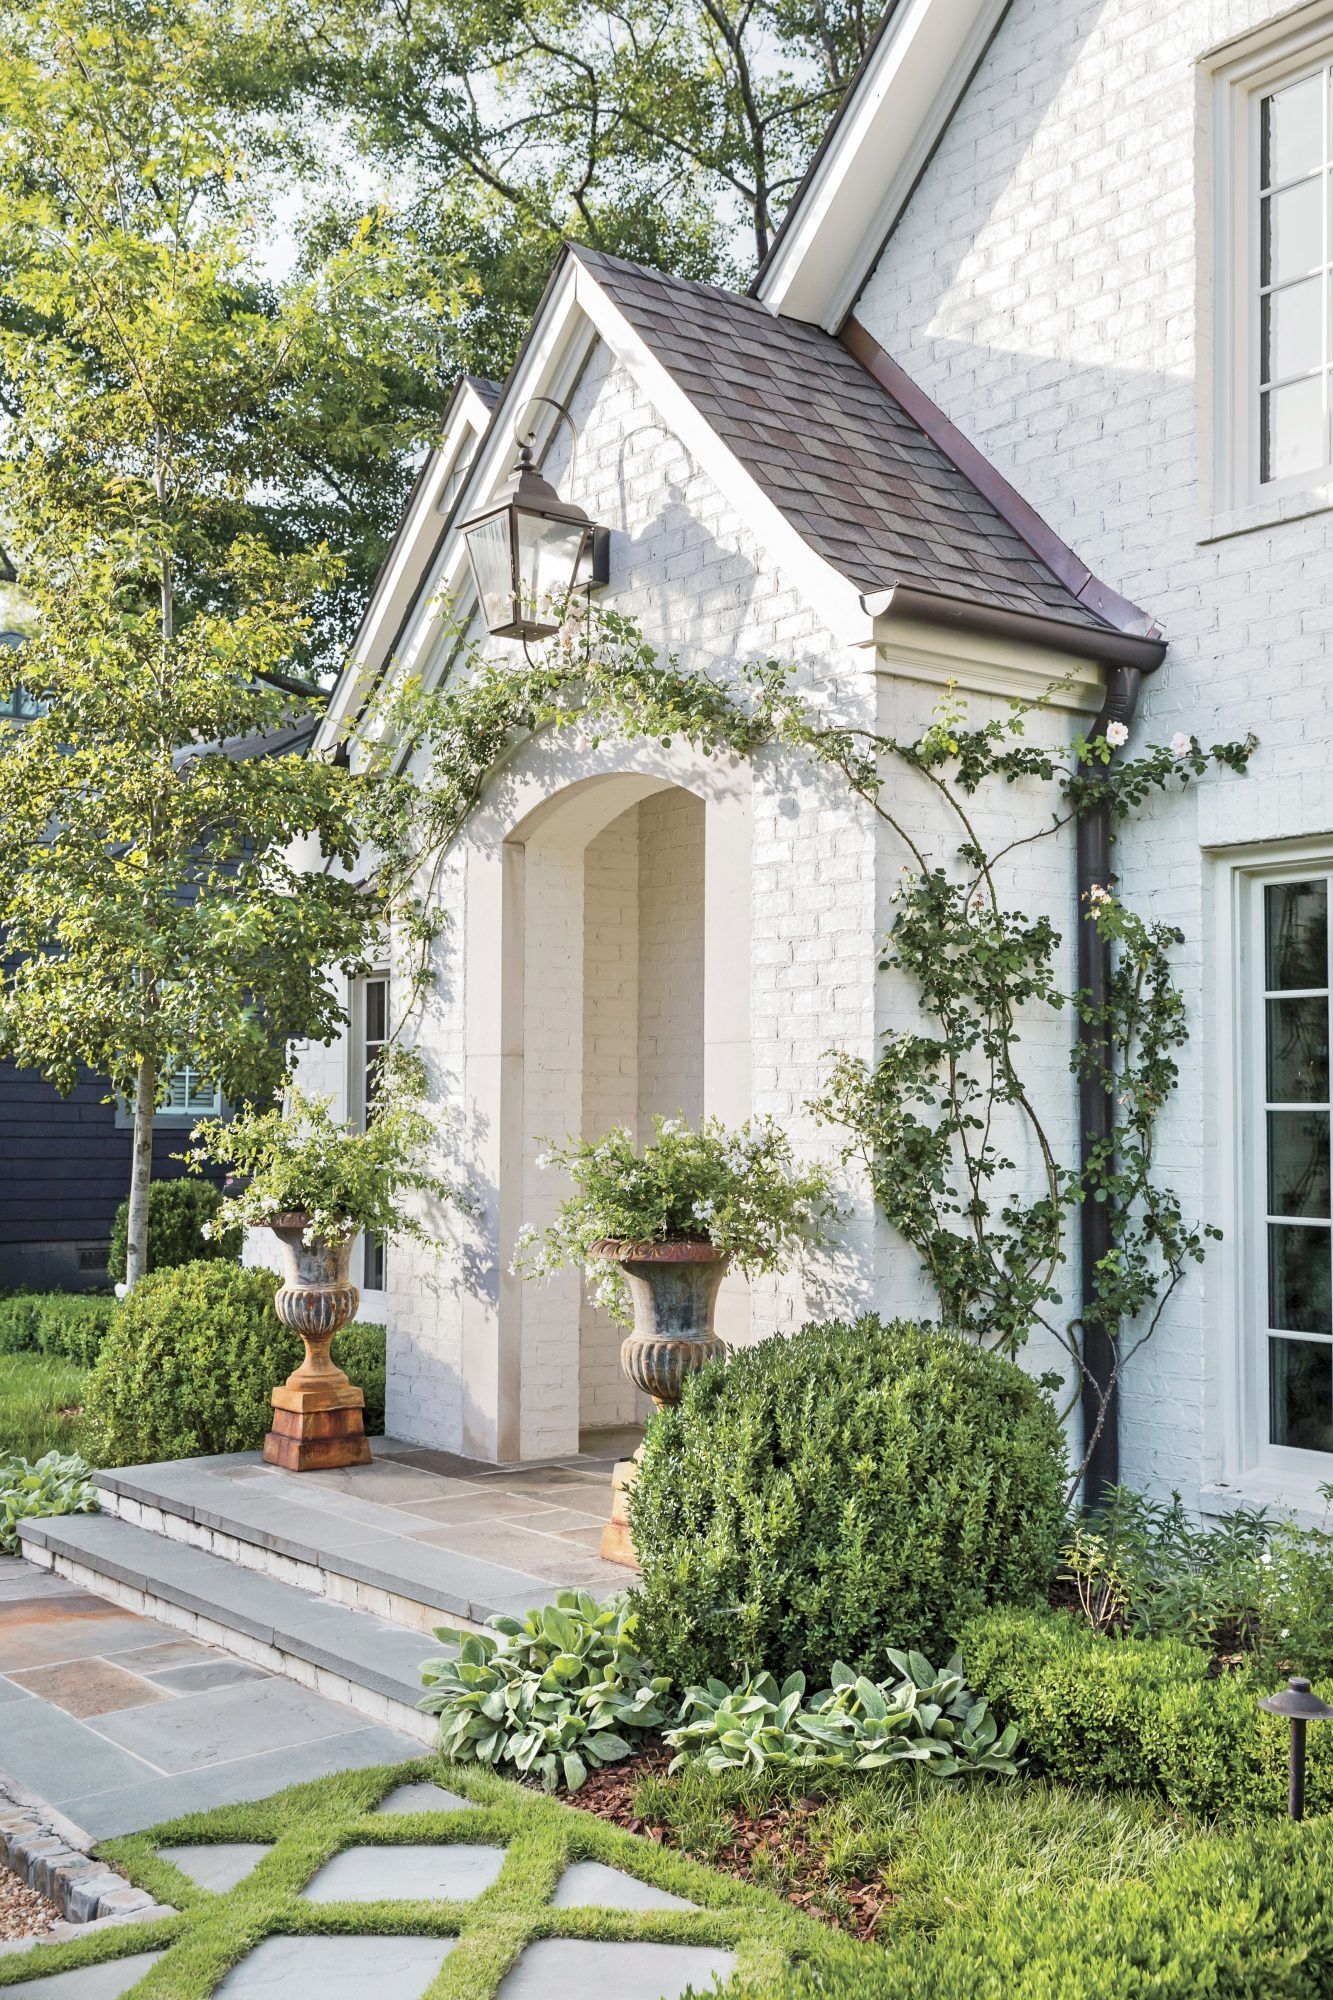 How Landscaping Added Instant Charm to this New Birmingham Home is part of White brick houses, Brick porch, House exterior, Exterior, Curb appeal landscape, White brick - Shapely hedges, bold pathways, colorful plantings, oh my